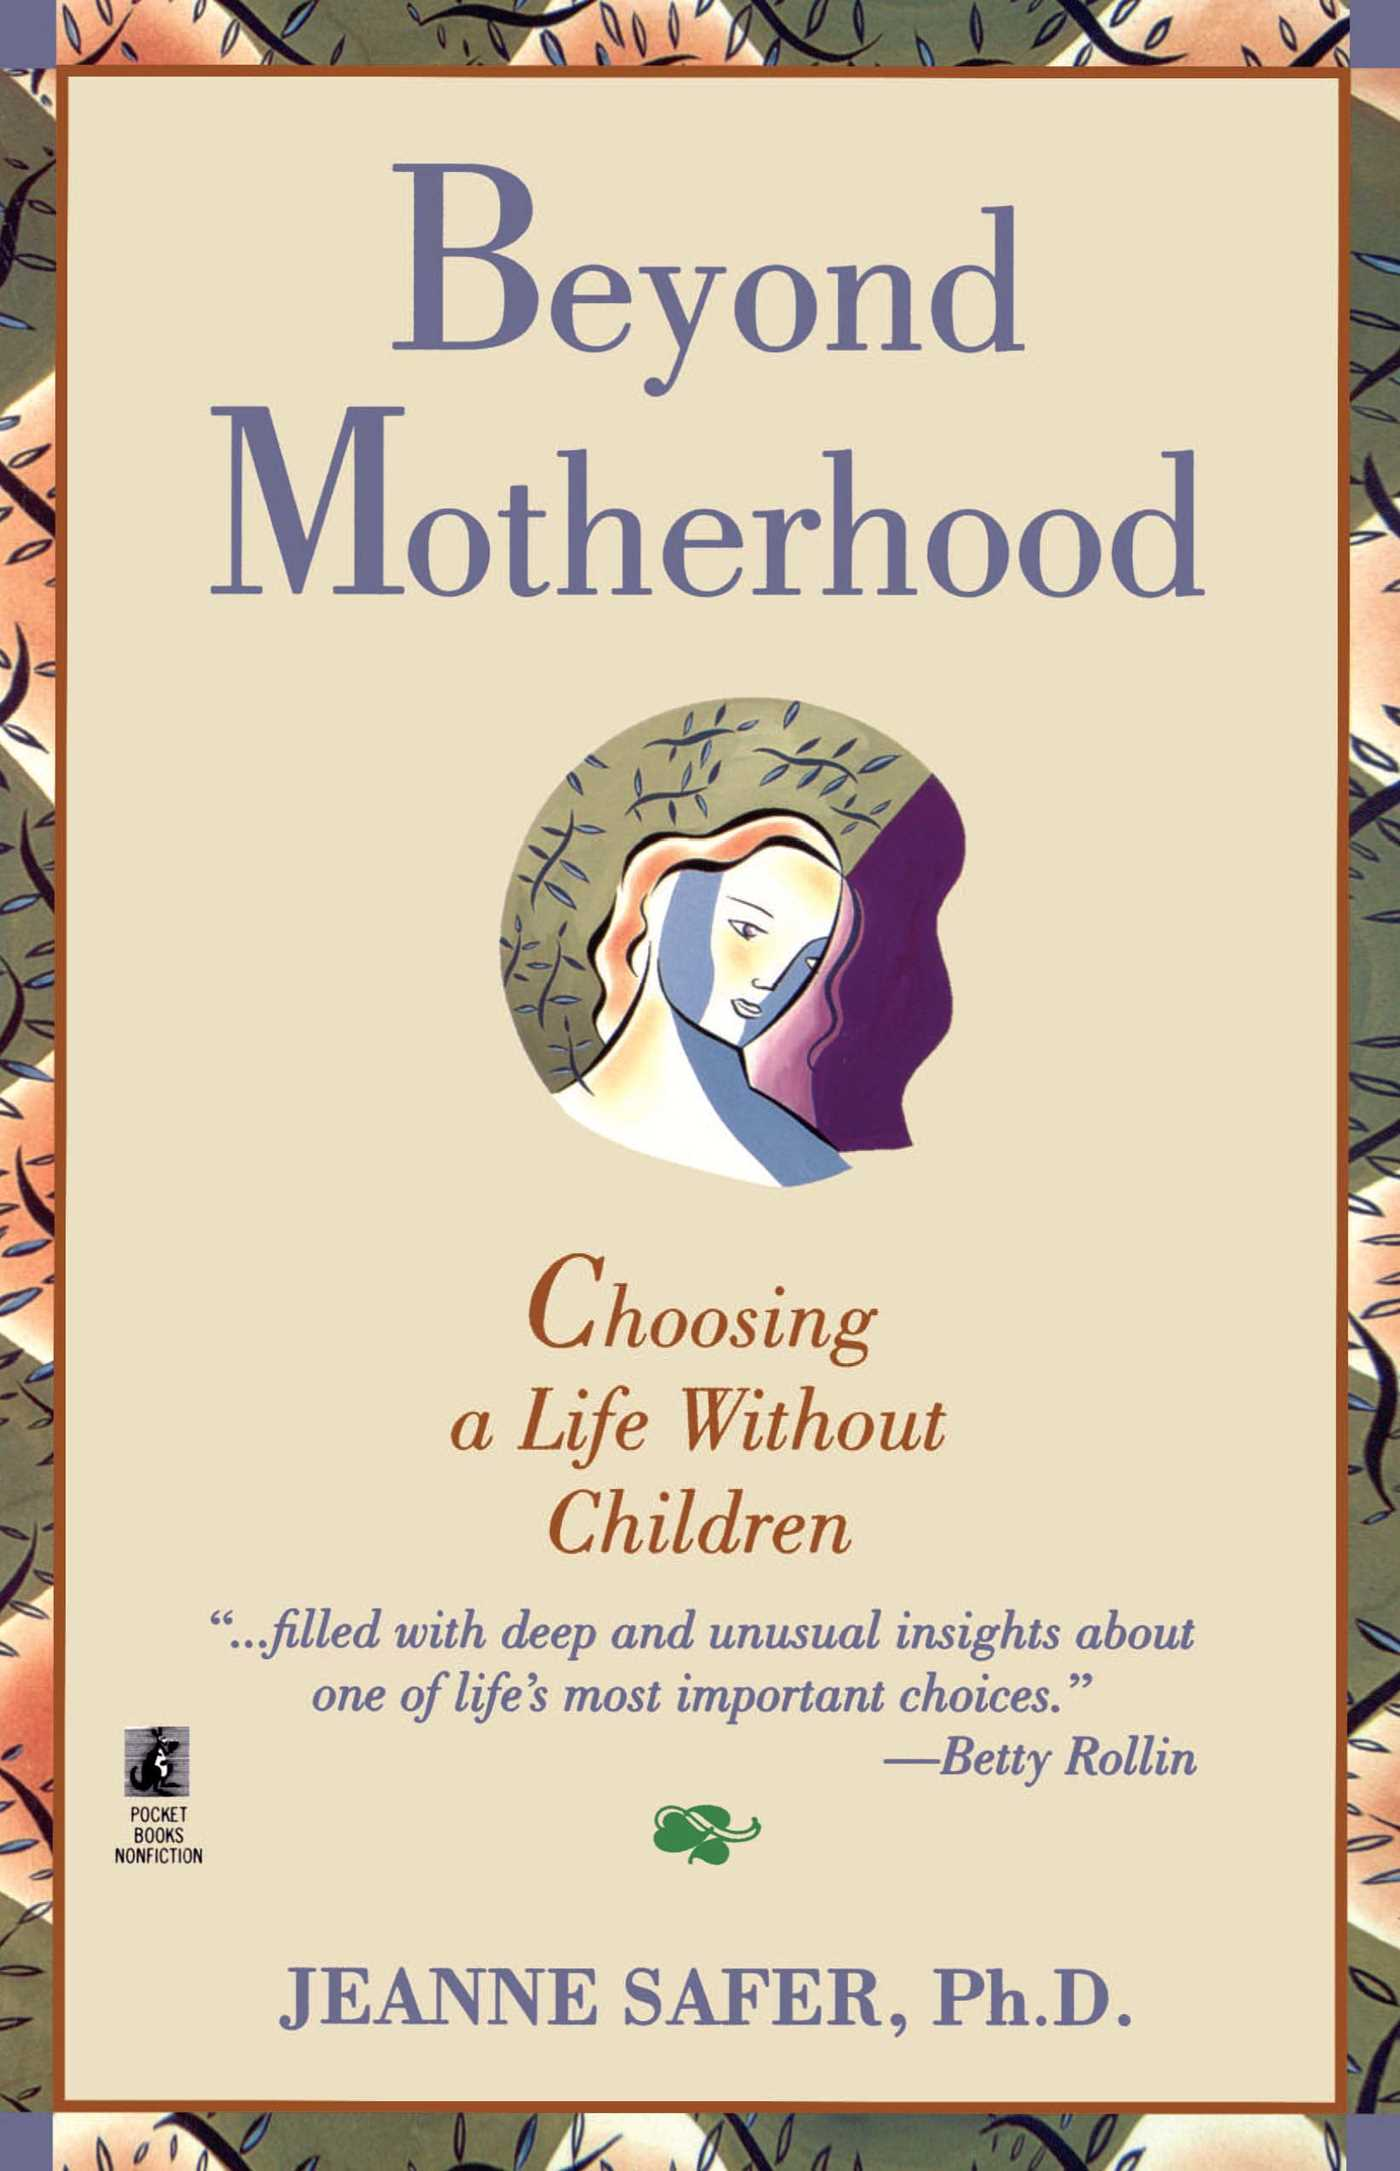 Beyond motherhood 9780671793449 hr